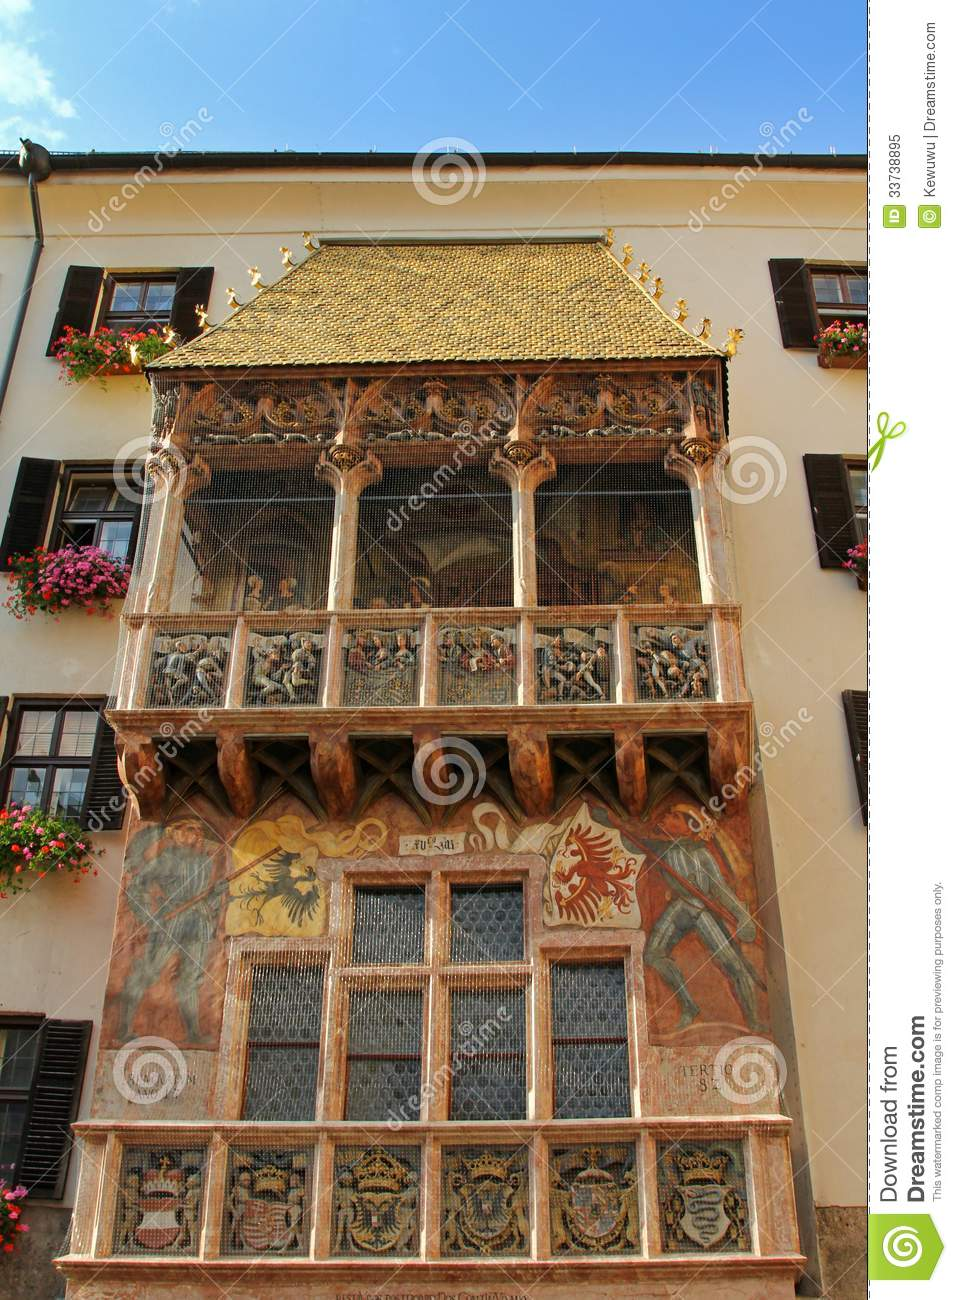 austria dachl famous golden goldenes innsbruck maximilian roof ... & Golden Roof (Goldenes Dachl) Royalty Free Stock Photo - Image ... memphite.com